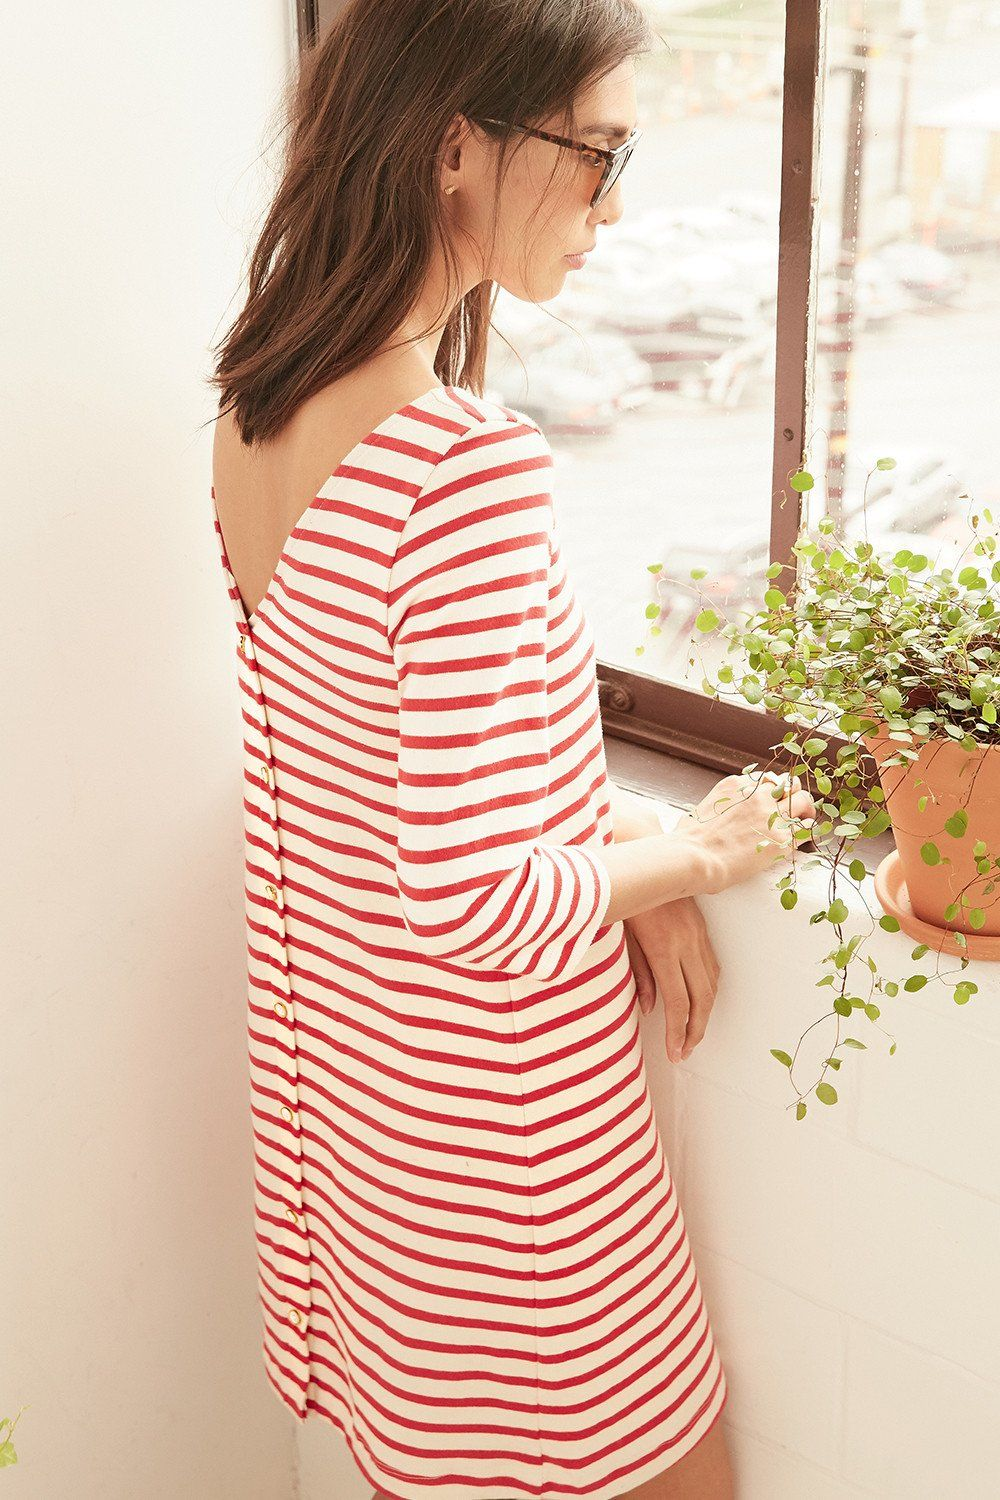 Amour Vert is sustainable fashion made in the USA